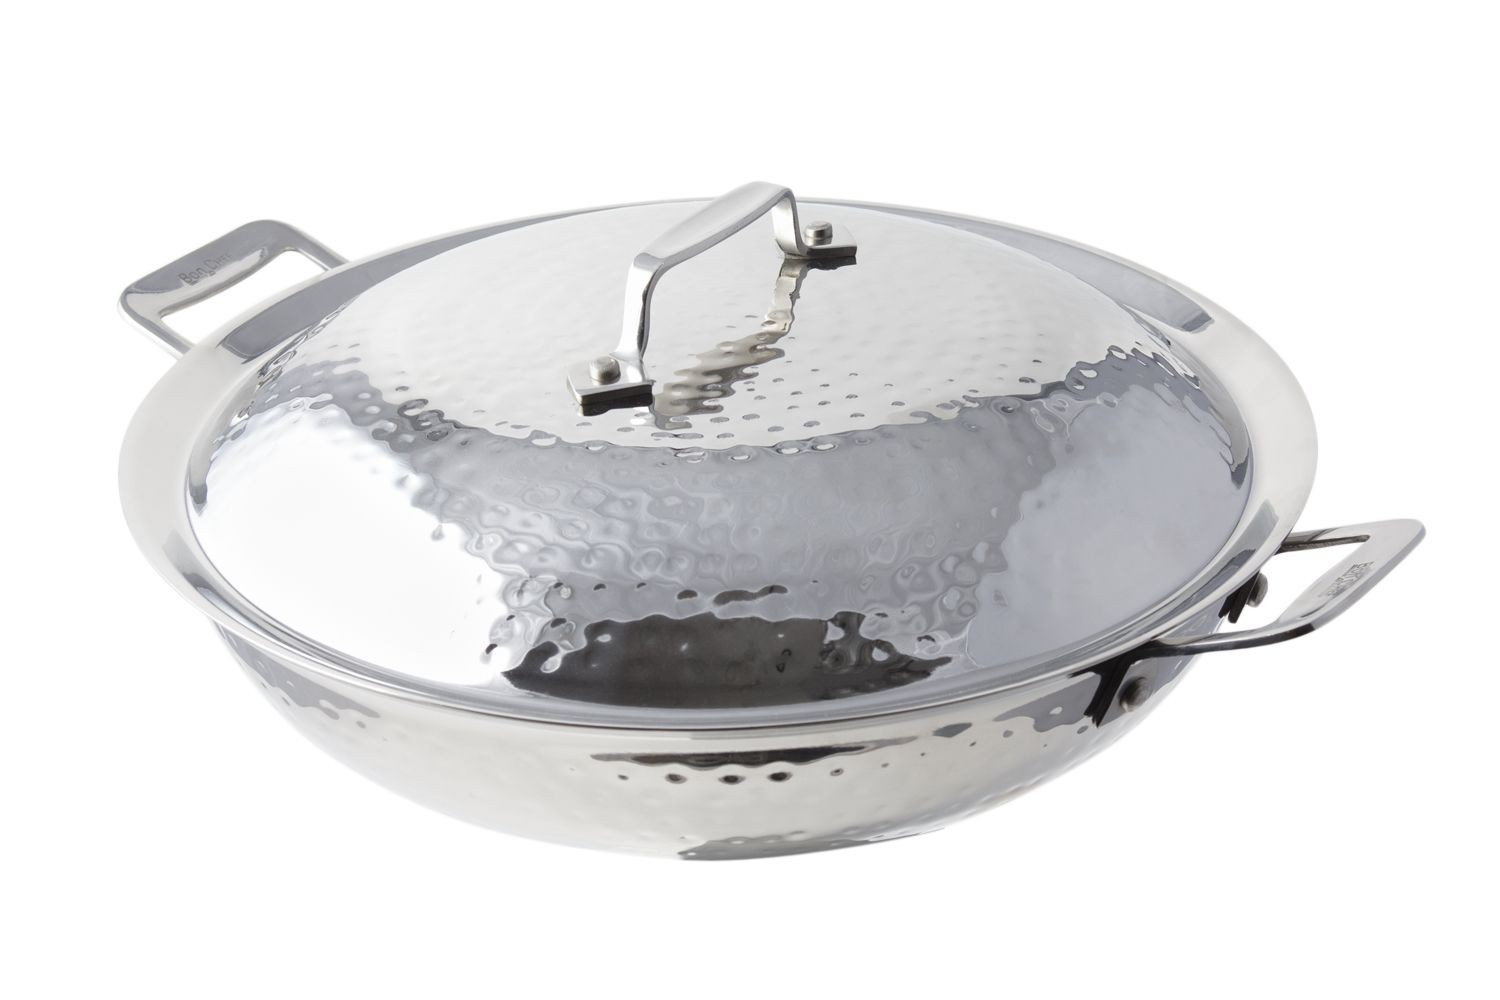 Bon Chef 60015HF Cucina Stainless Steel Stir Fry Pan, Hammered Finish, 3 1/2 Qt.